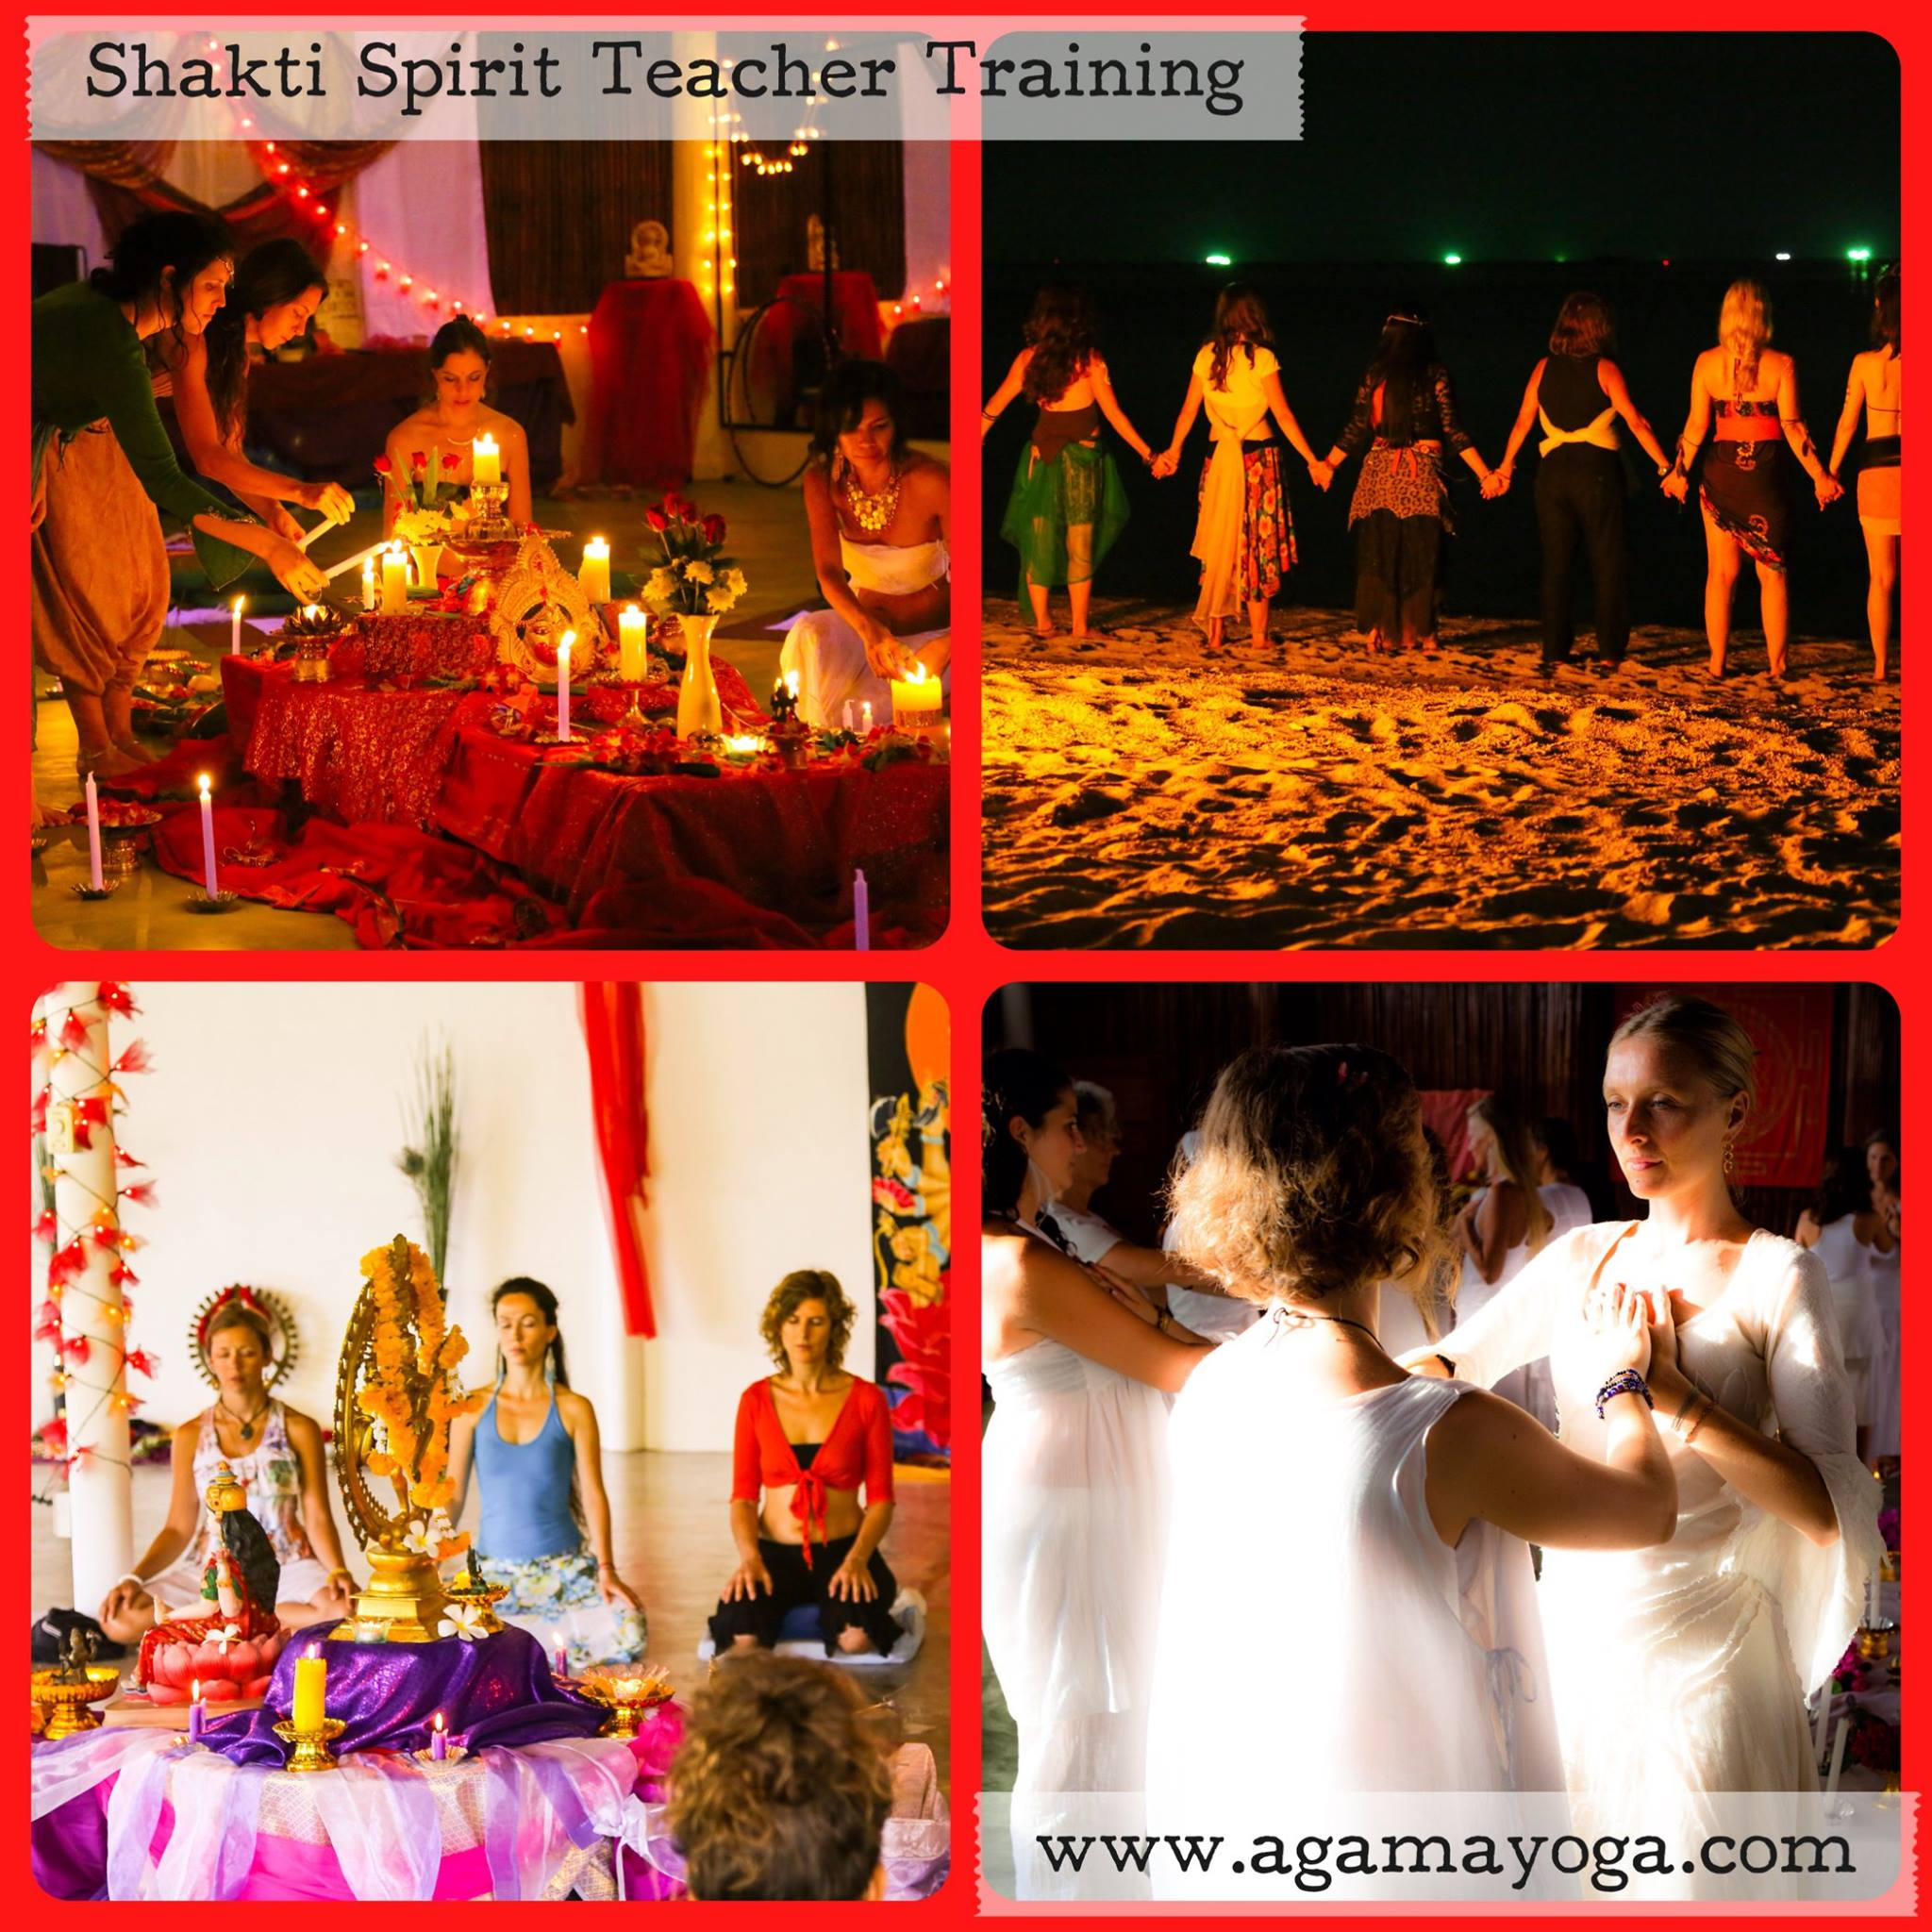 Shakti Spirit Teacher Training